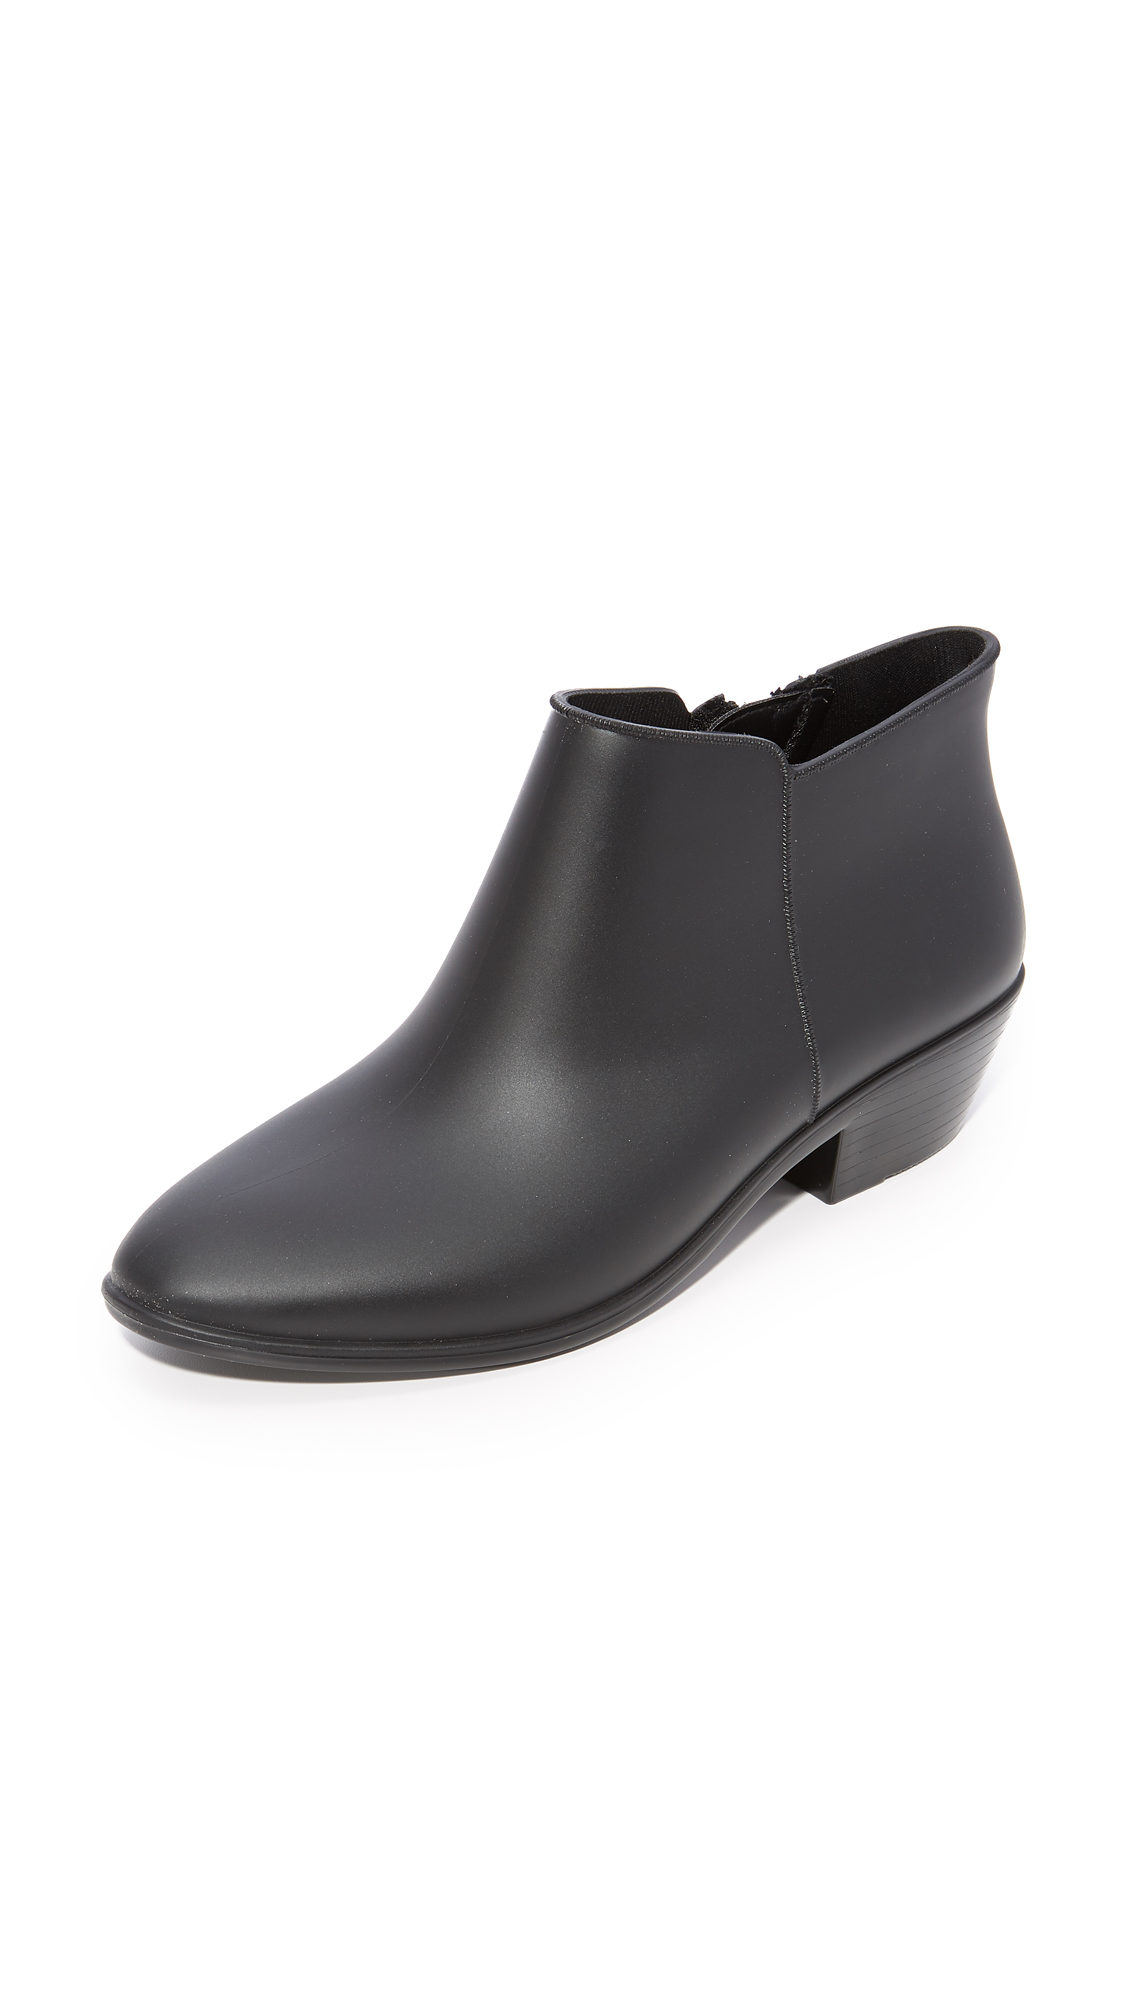 Sam Edelman Petty Rain Booties - Black